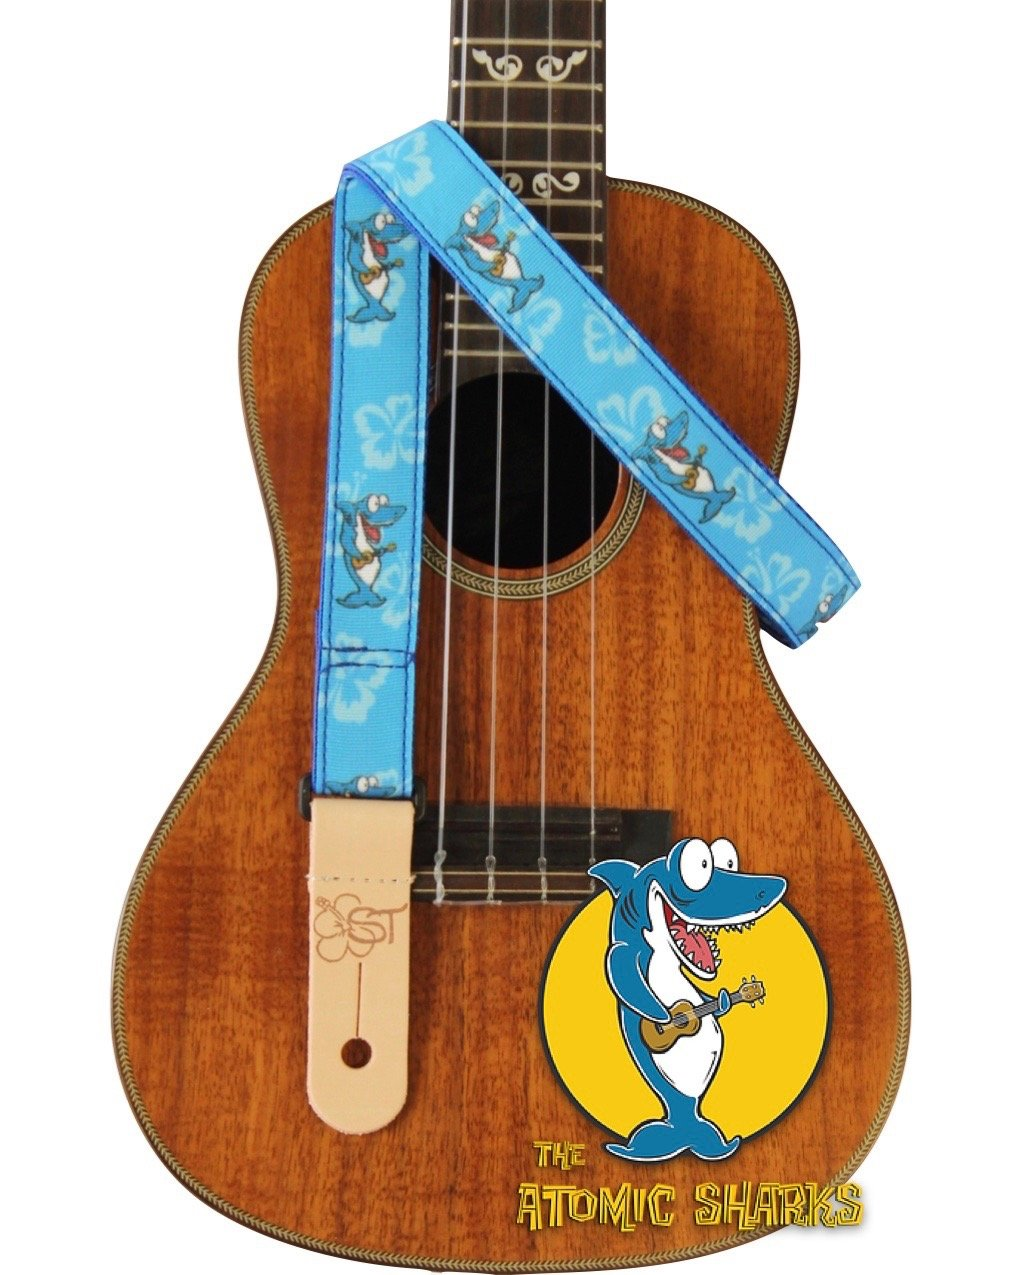 ST 1 Atomic Sharks Ukulele Strap - Blue